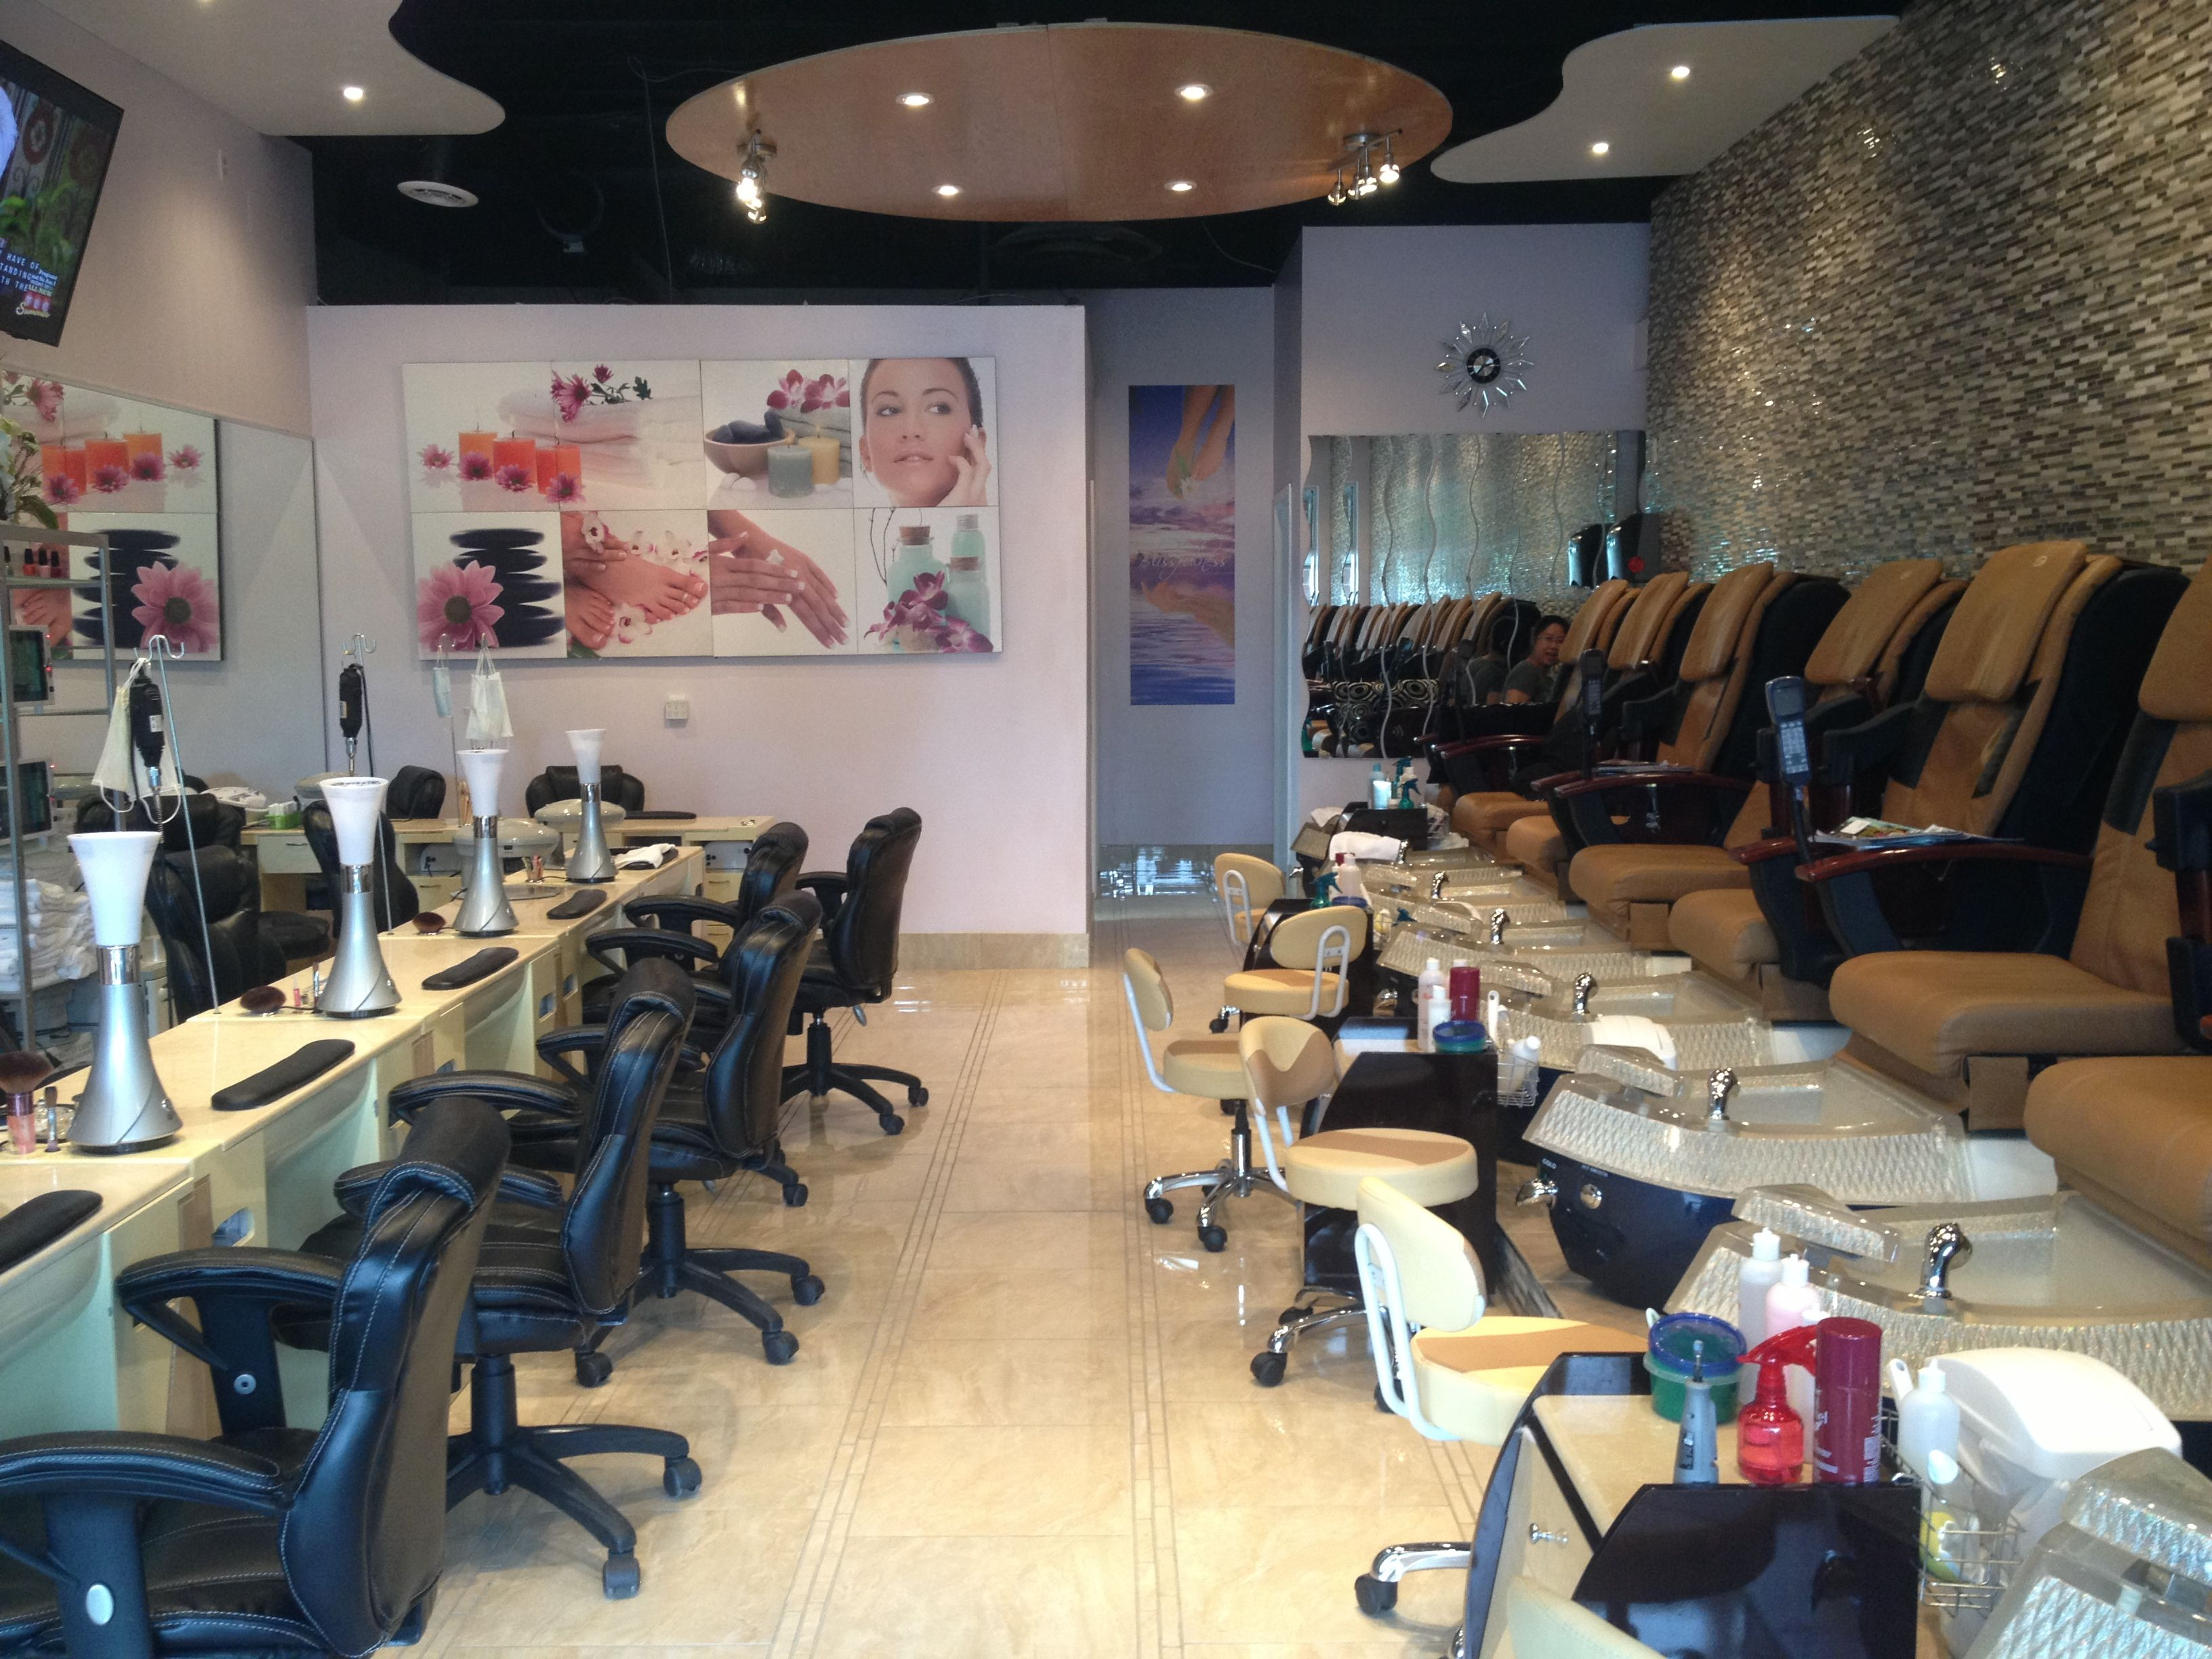 Nice One Nails (Carling) in Ottawa, ON | 6135962112 | 411.ca